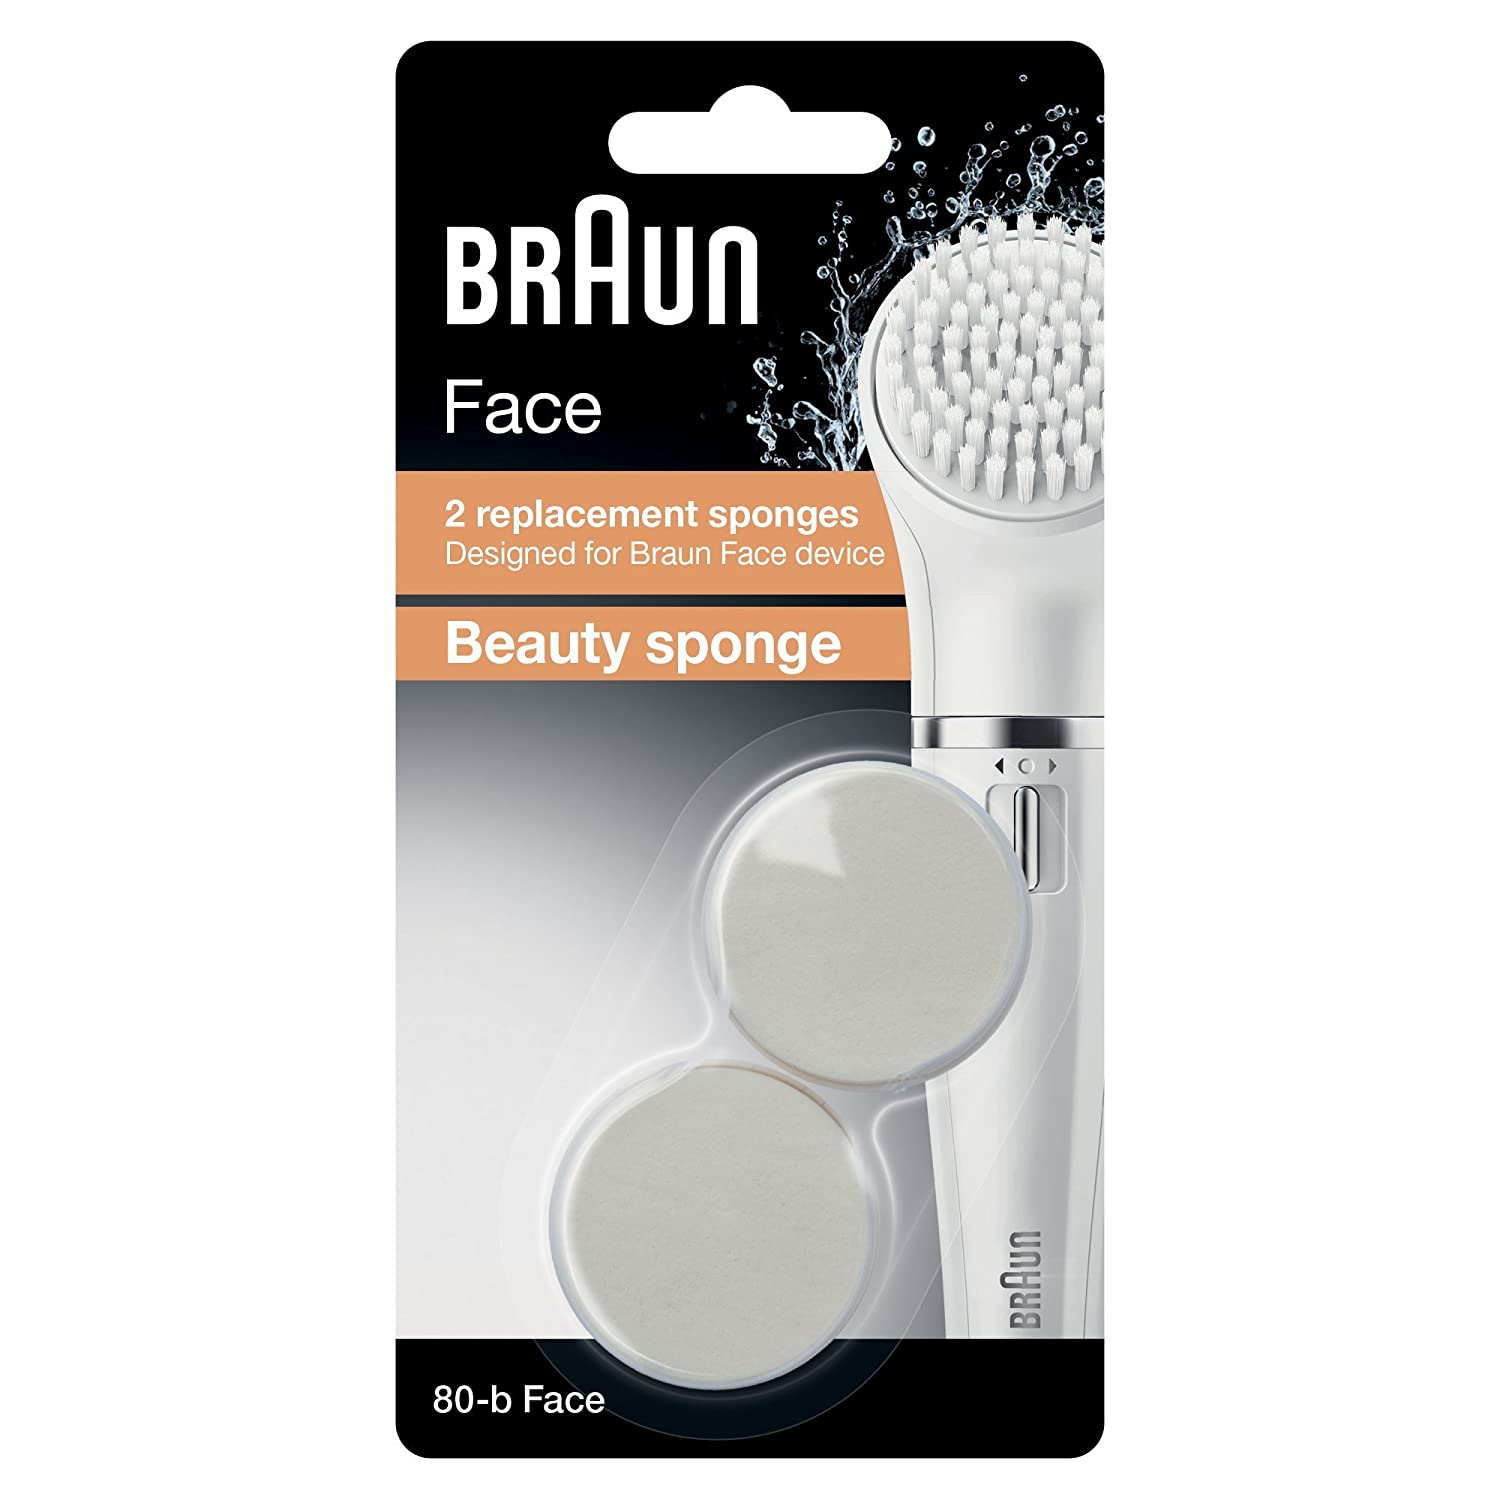 Braun FaceSpa 851V 3-in-1 Facial Epilator For Hair Removal And Cleansing Brush, System Procter & Gamble 81581331